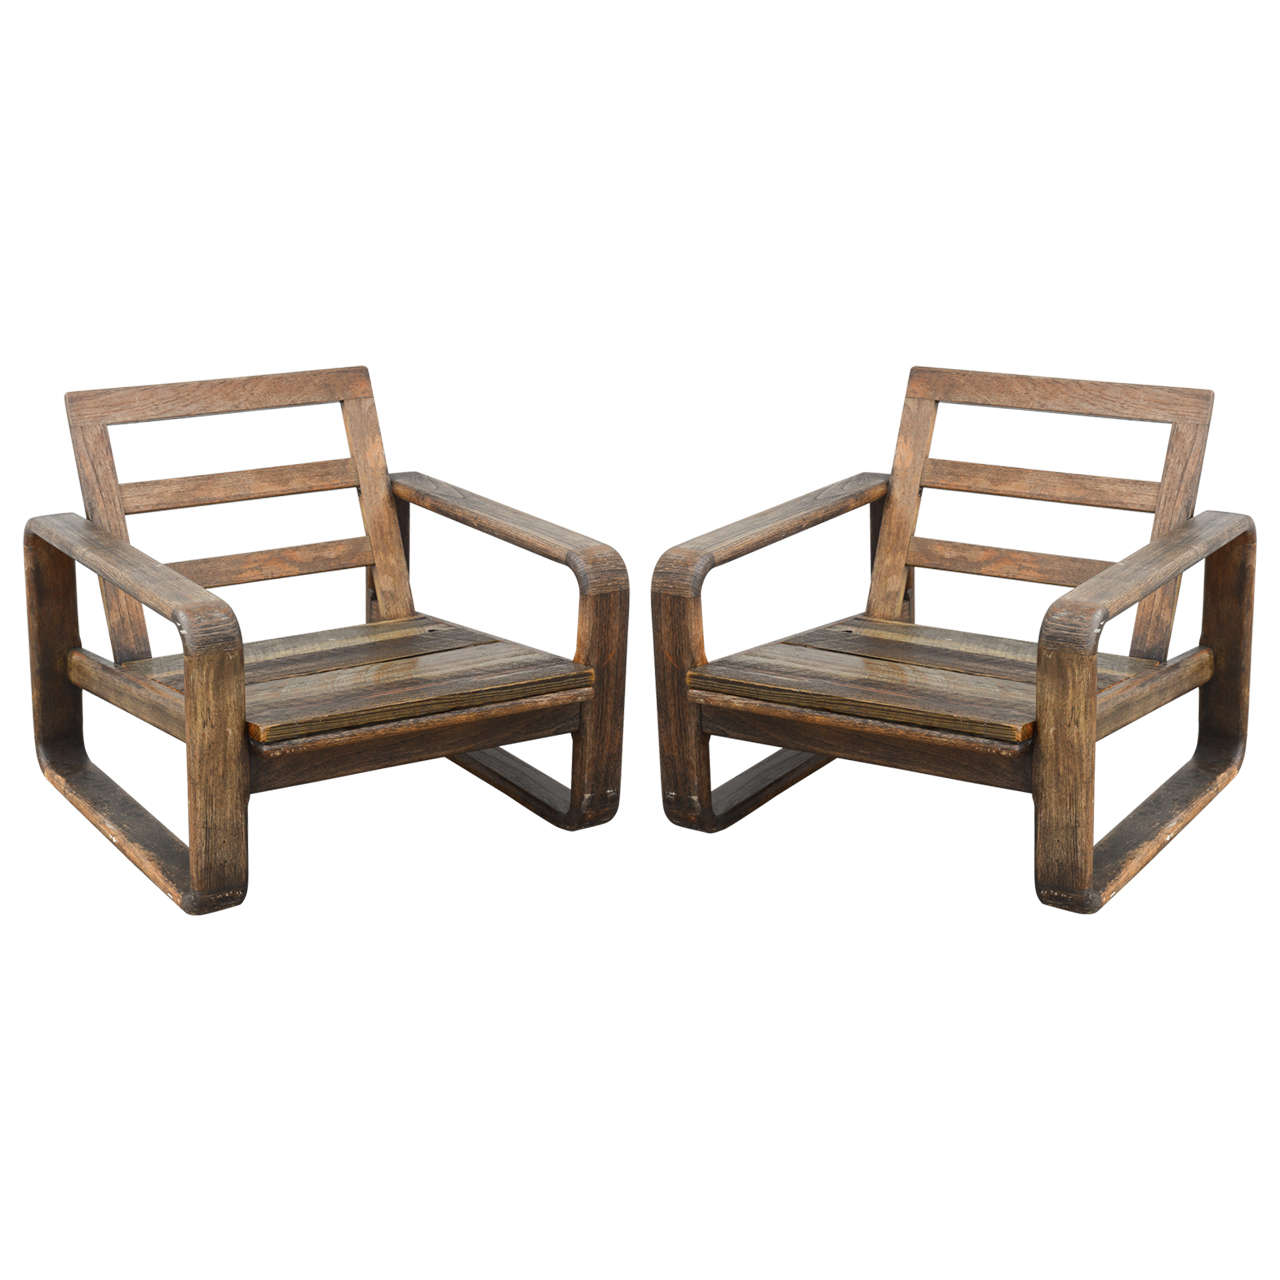 Vintage Teak and Reclaimed Wood Chairs, 1950s, USA 1 - Vintage Teak And Reclaimed Wood Chairs, 1950s, USA For Sale At 1stdibs